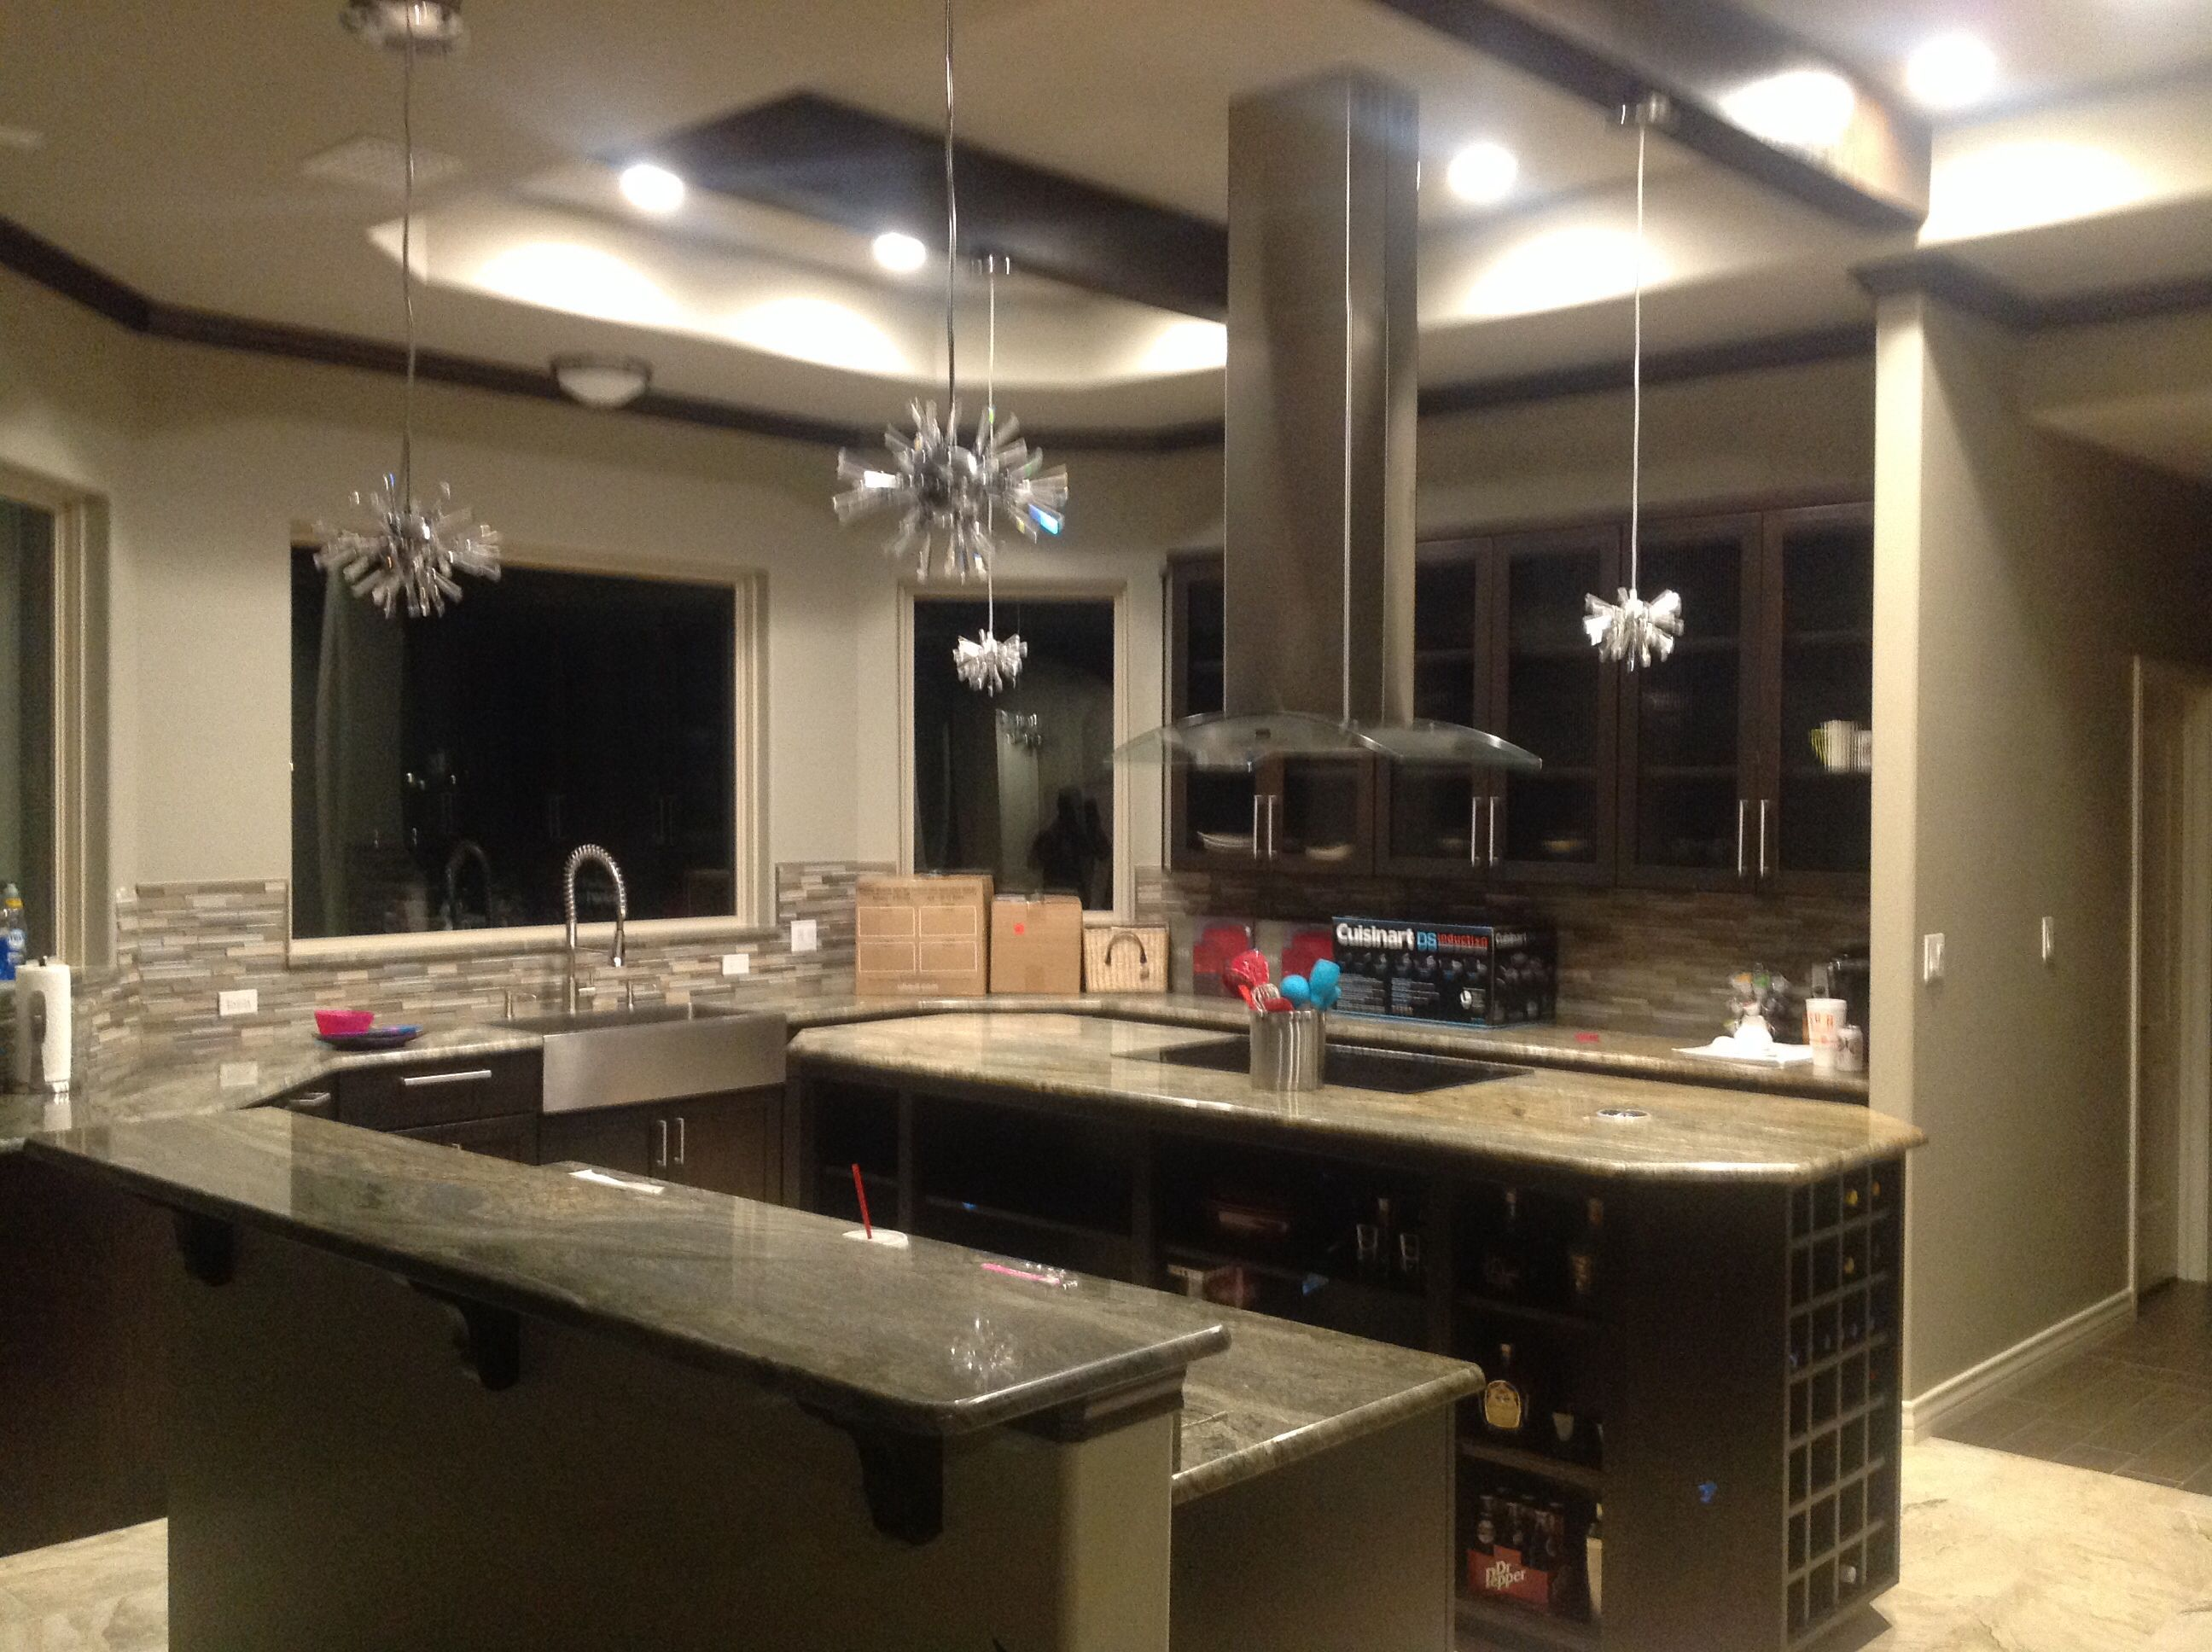 Octagon Elongated Island Kitchen Shape Dark Wood Ceiling Beams Match The Lower Cabinets Not Lit In This Picture Are 4 Radiant Crystal Fixtures That